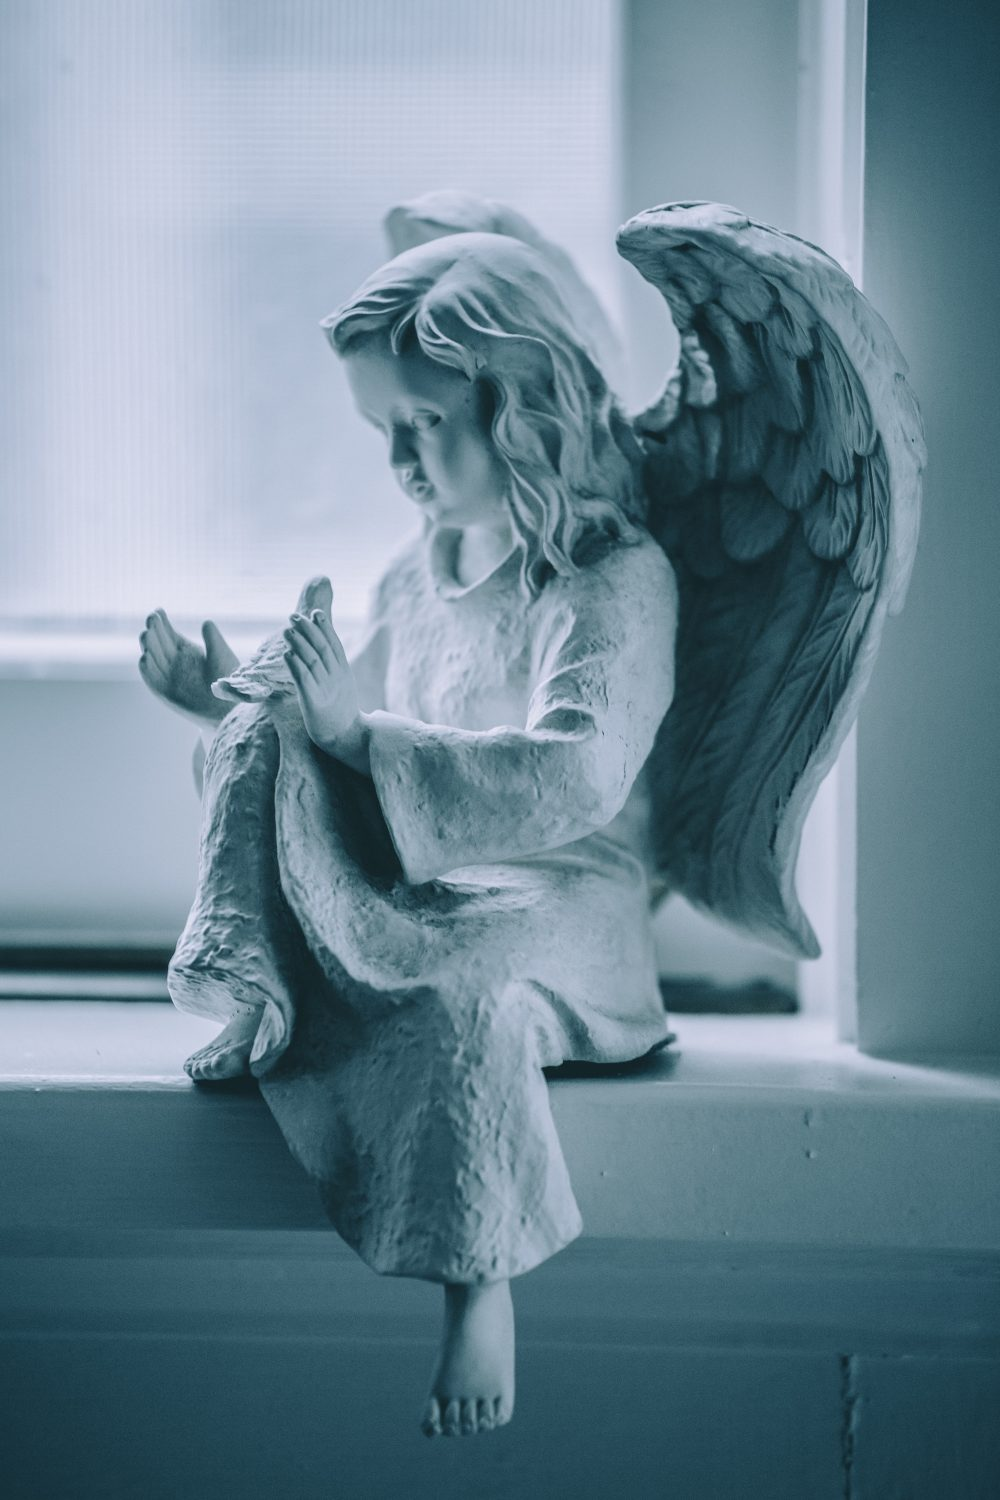 who is my guardian angel?